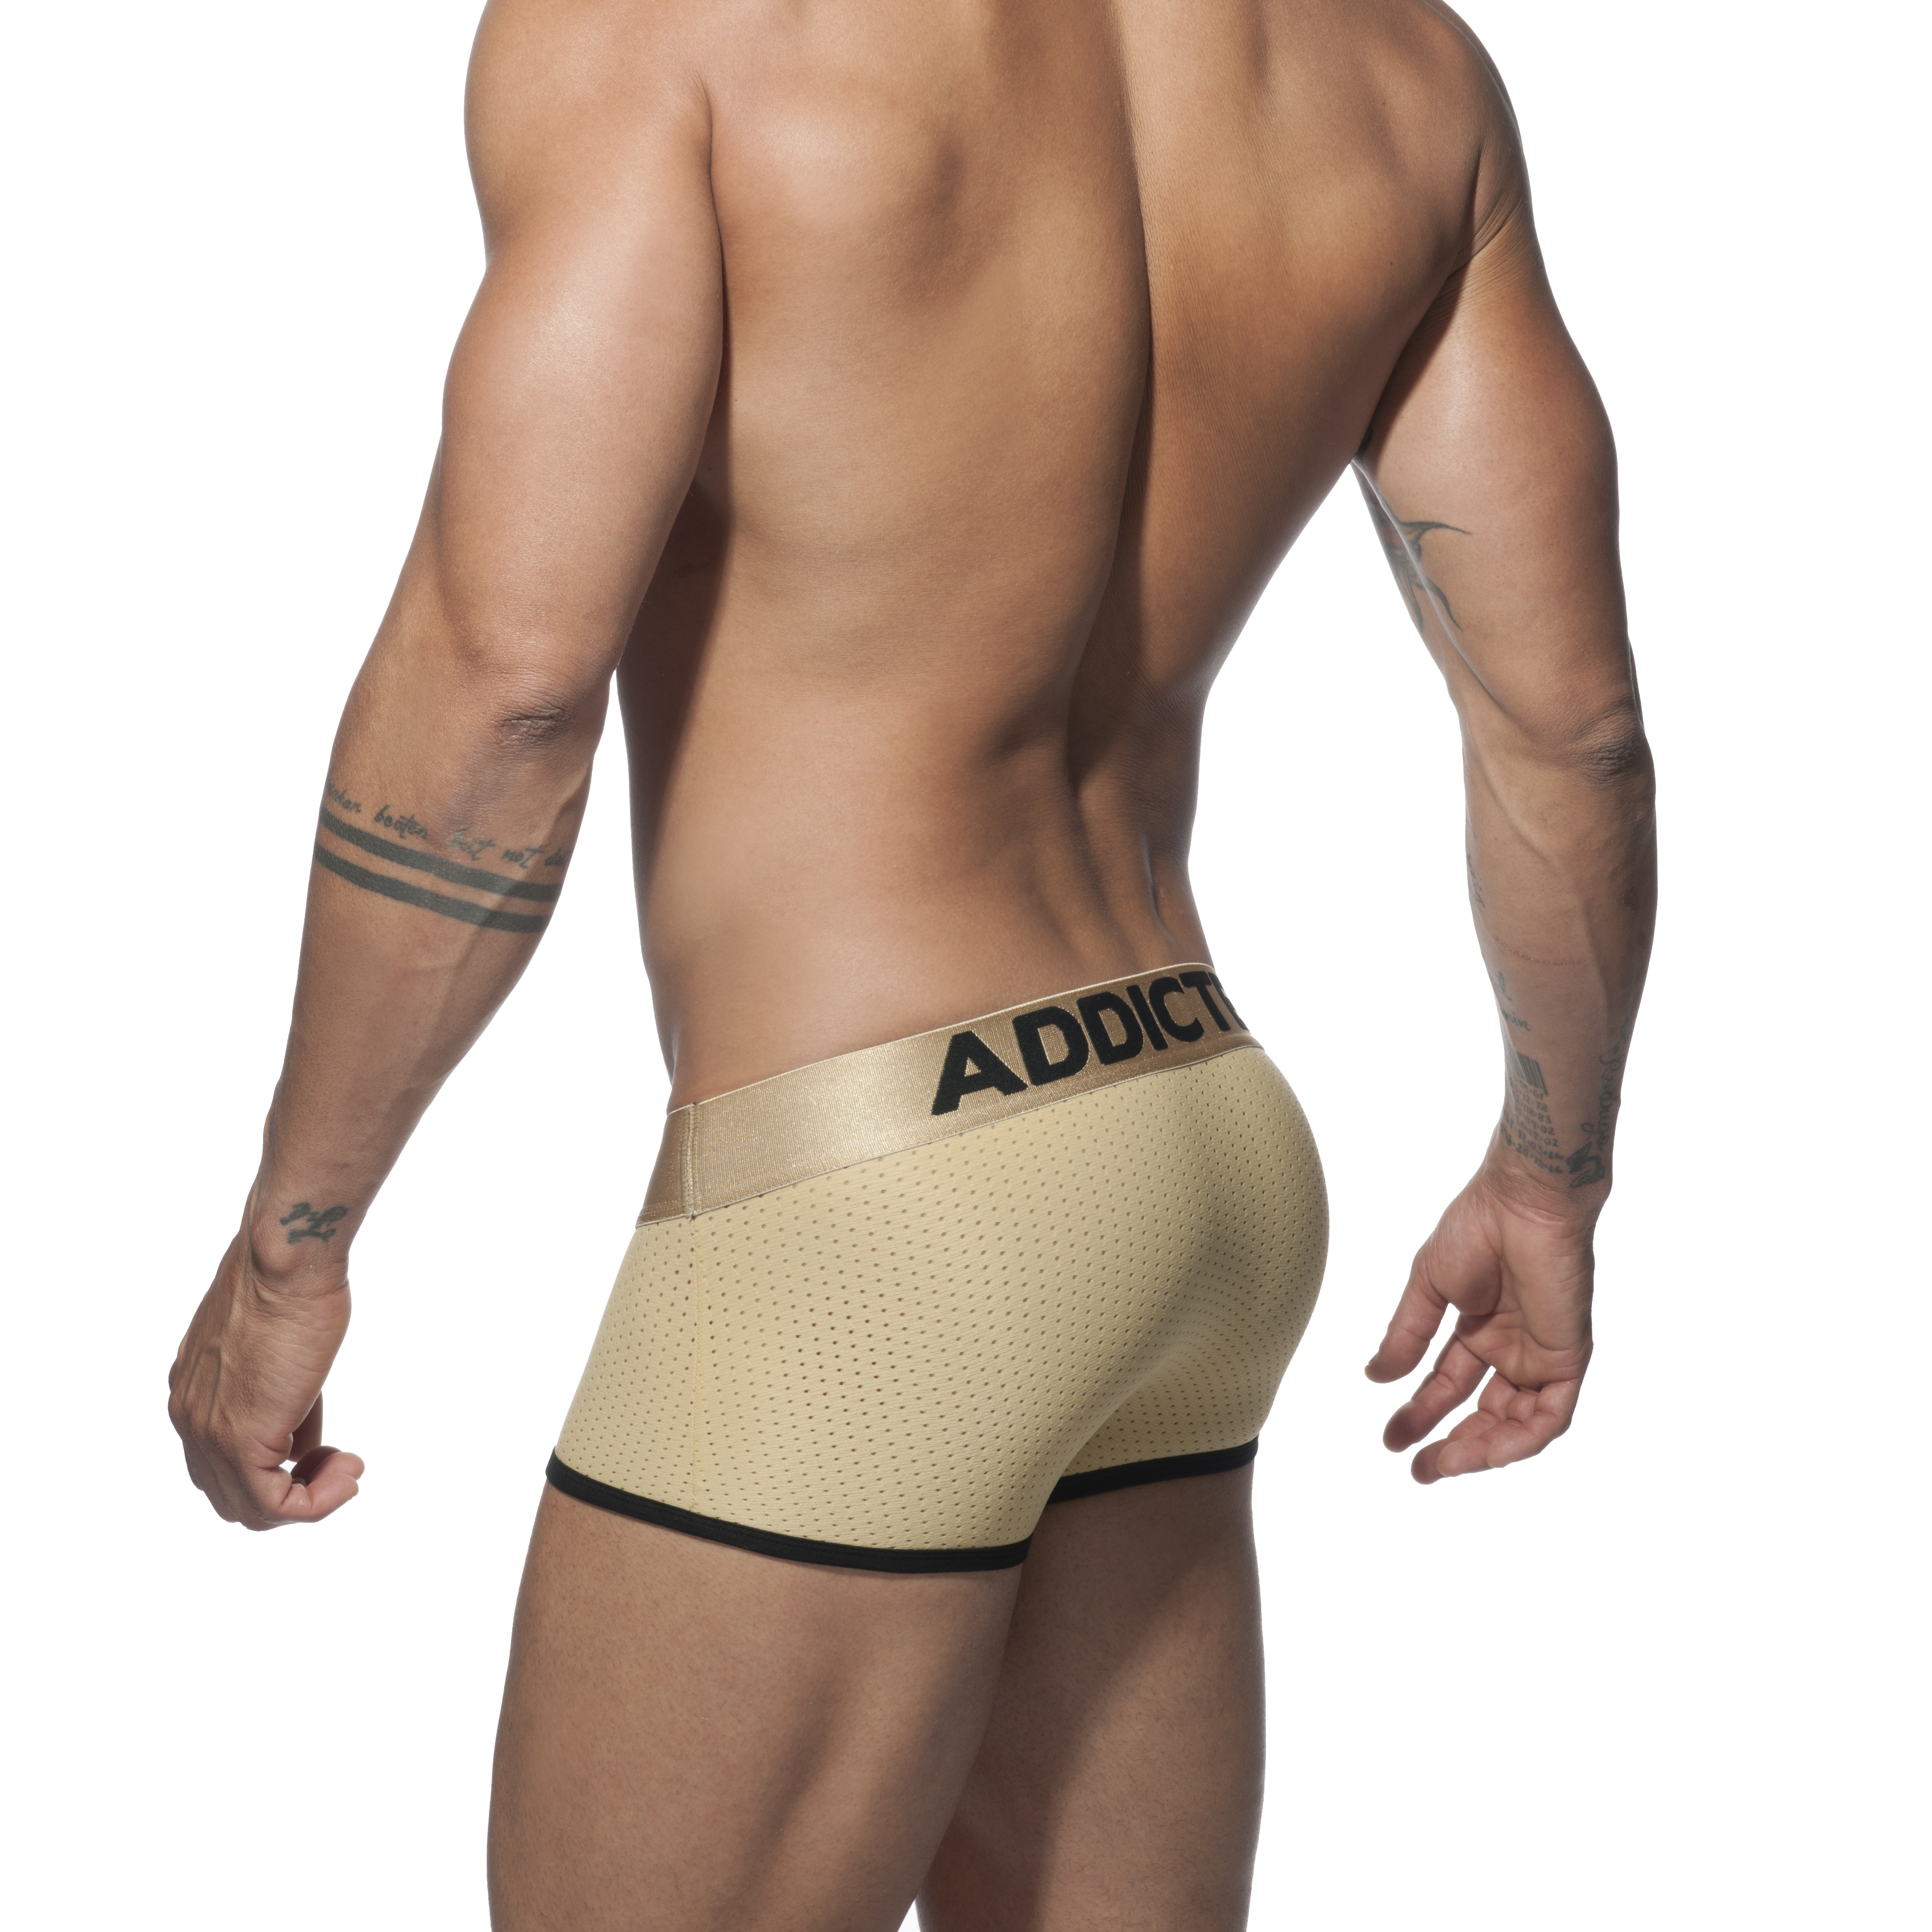 ADDICTED GOLD MESH BOXER - Gold